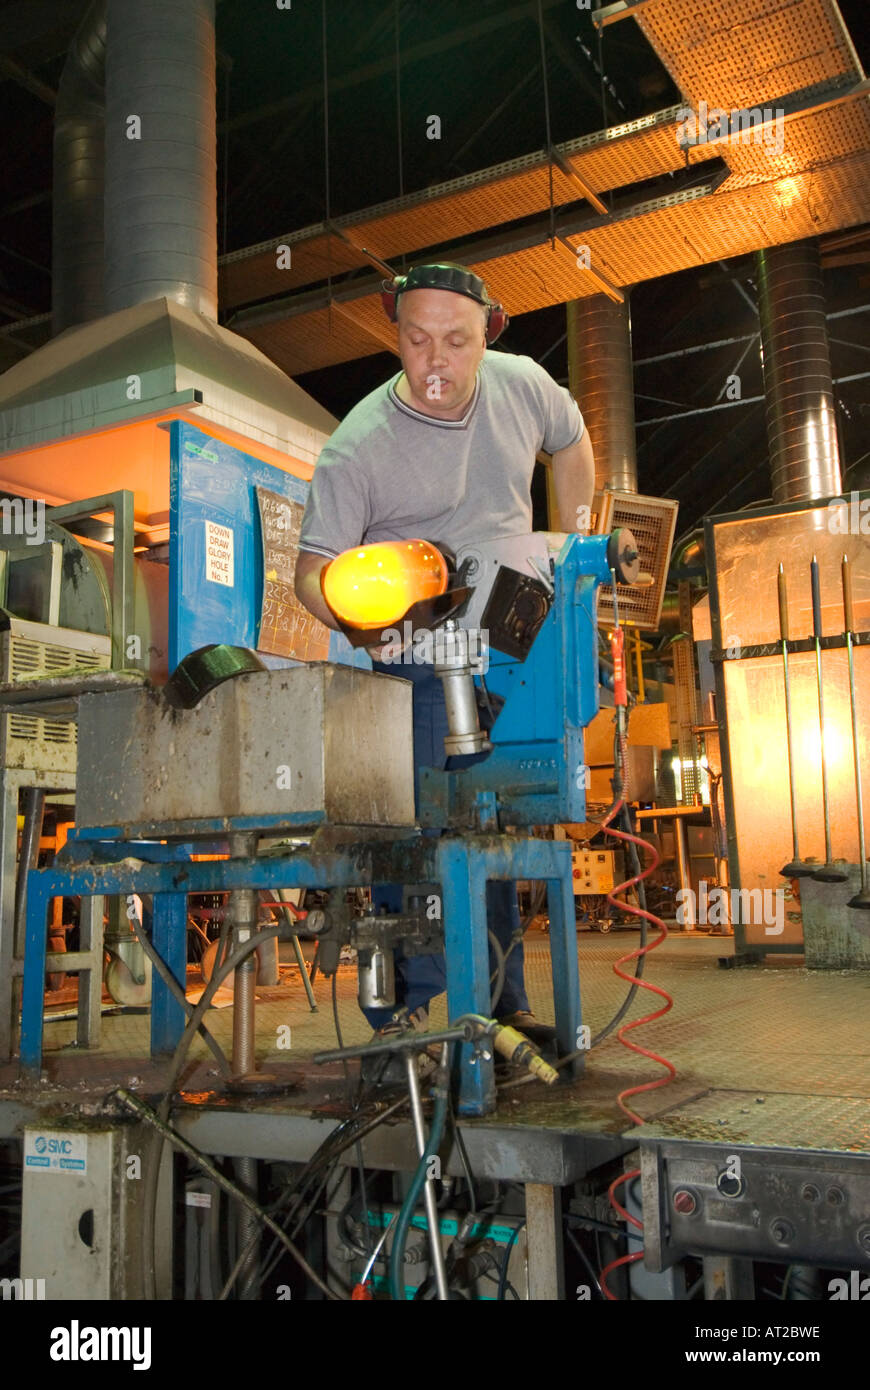 Ireland County Waterford Waterford Crystal factory guided tour glass blower forming vase - Stock Image